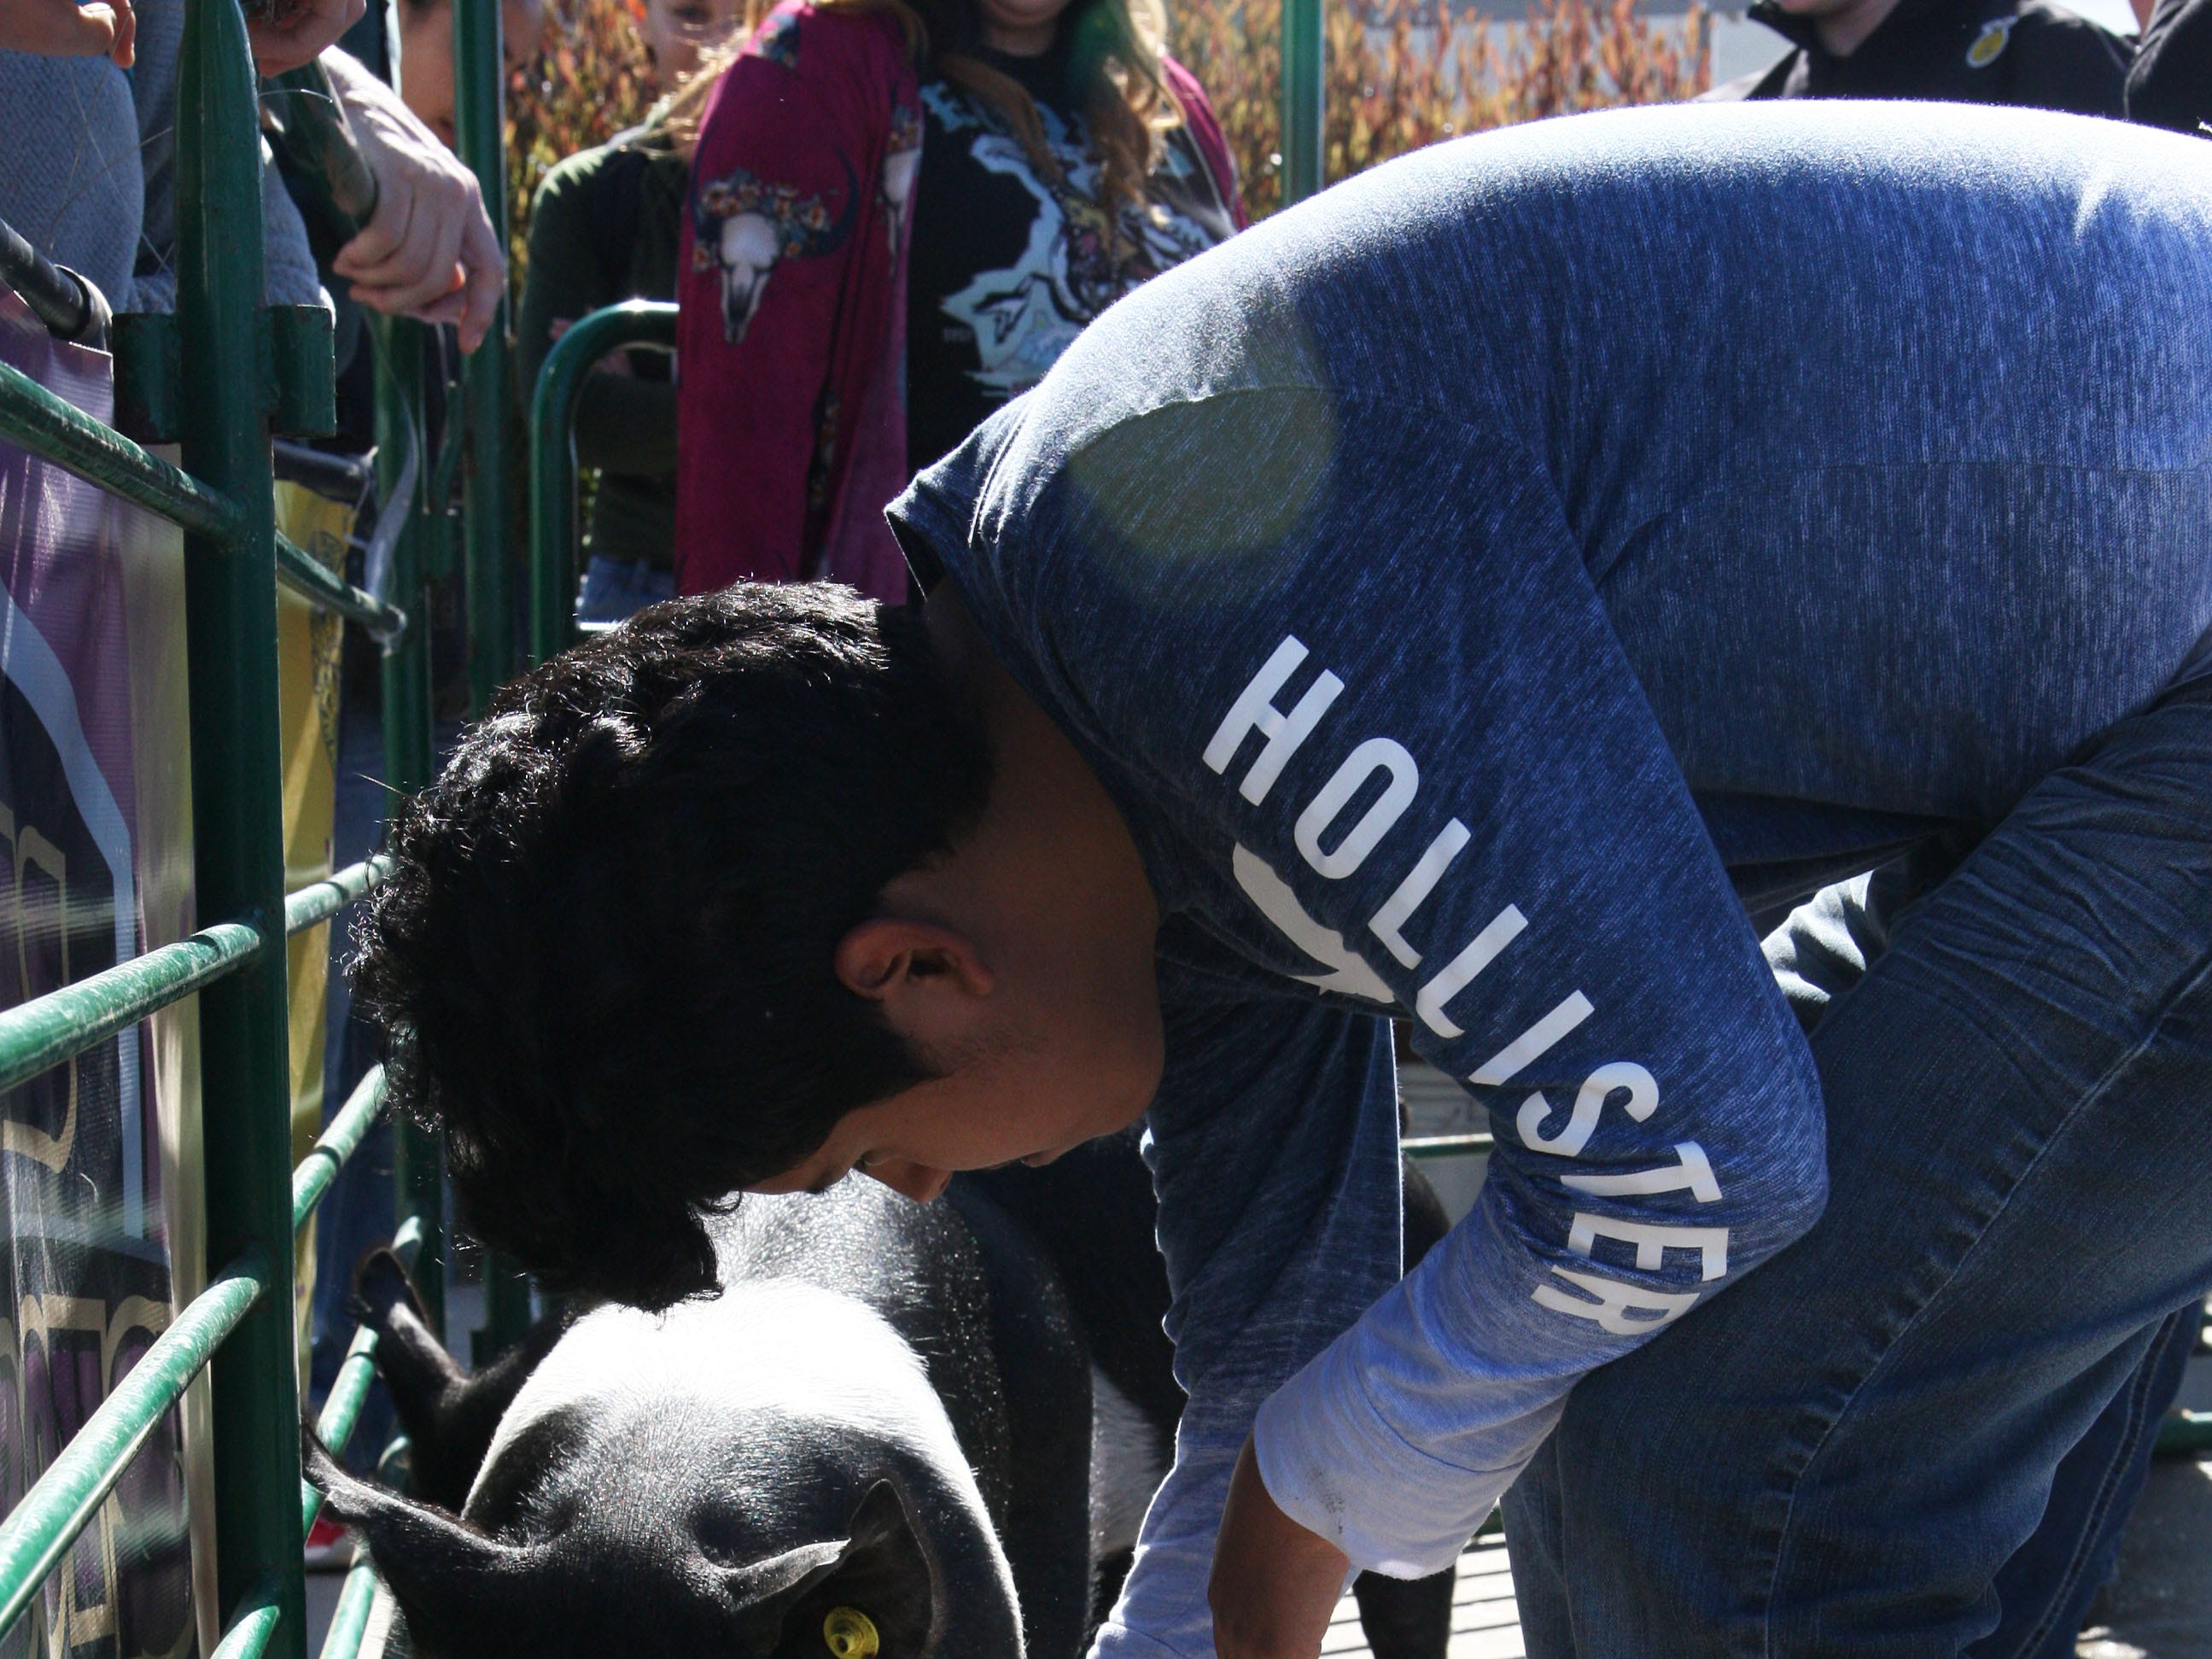 A student attempts to feed a pig.